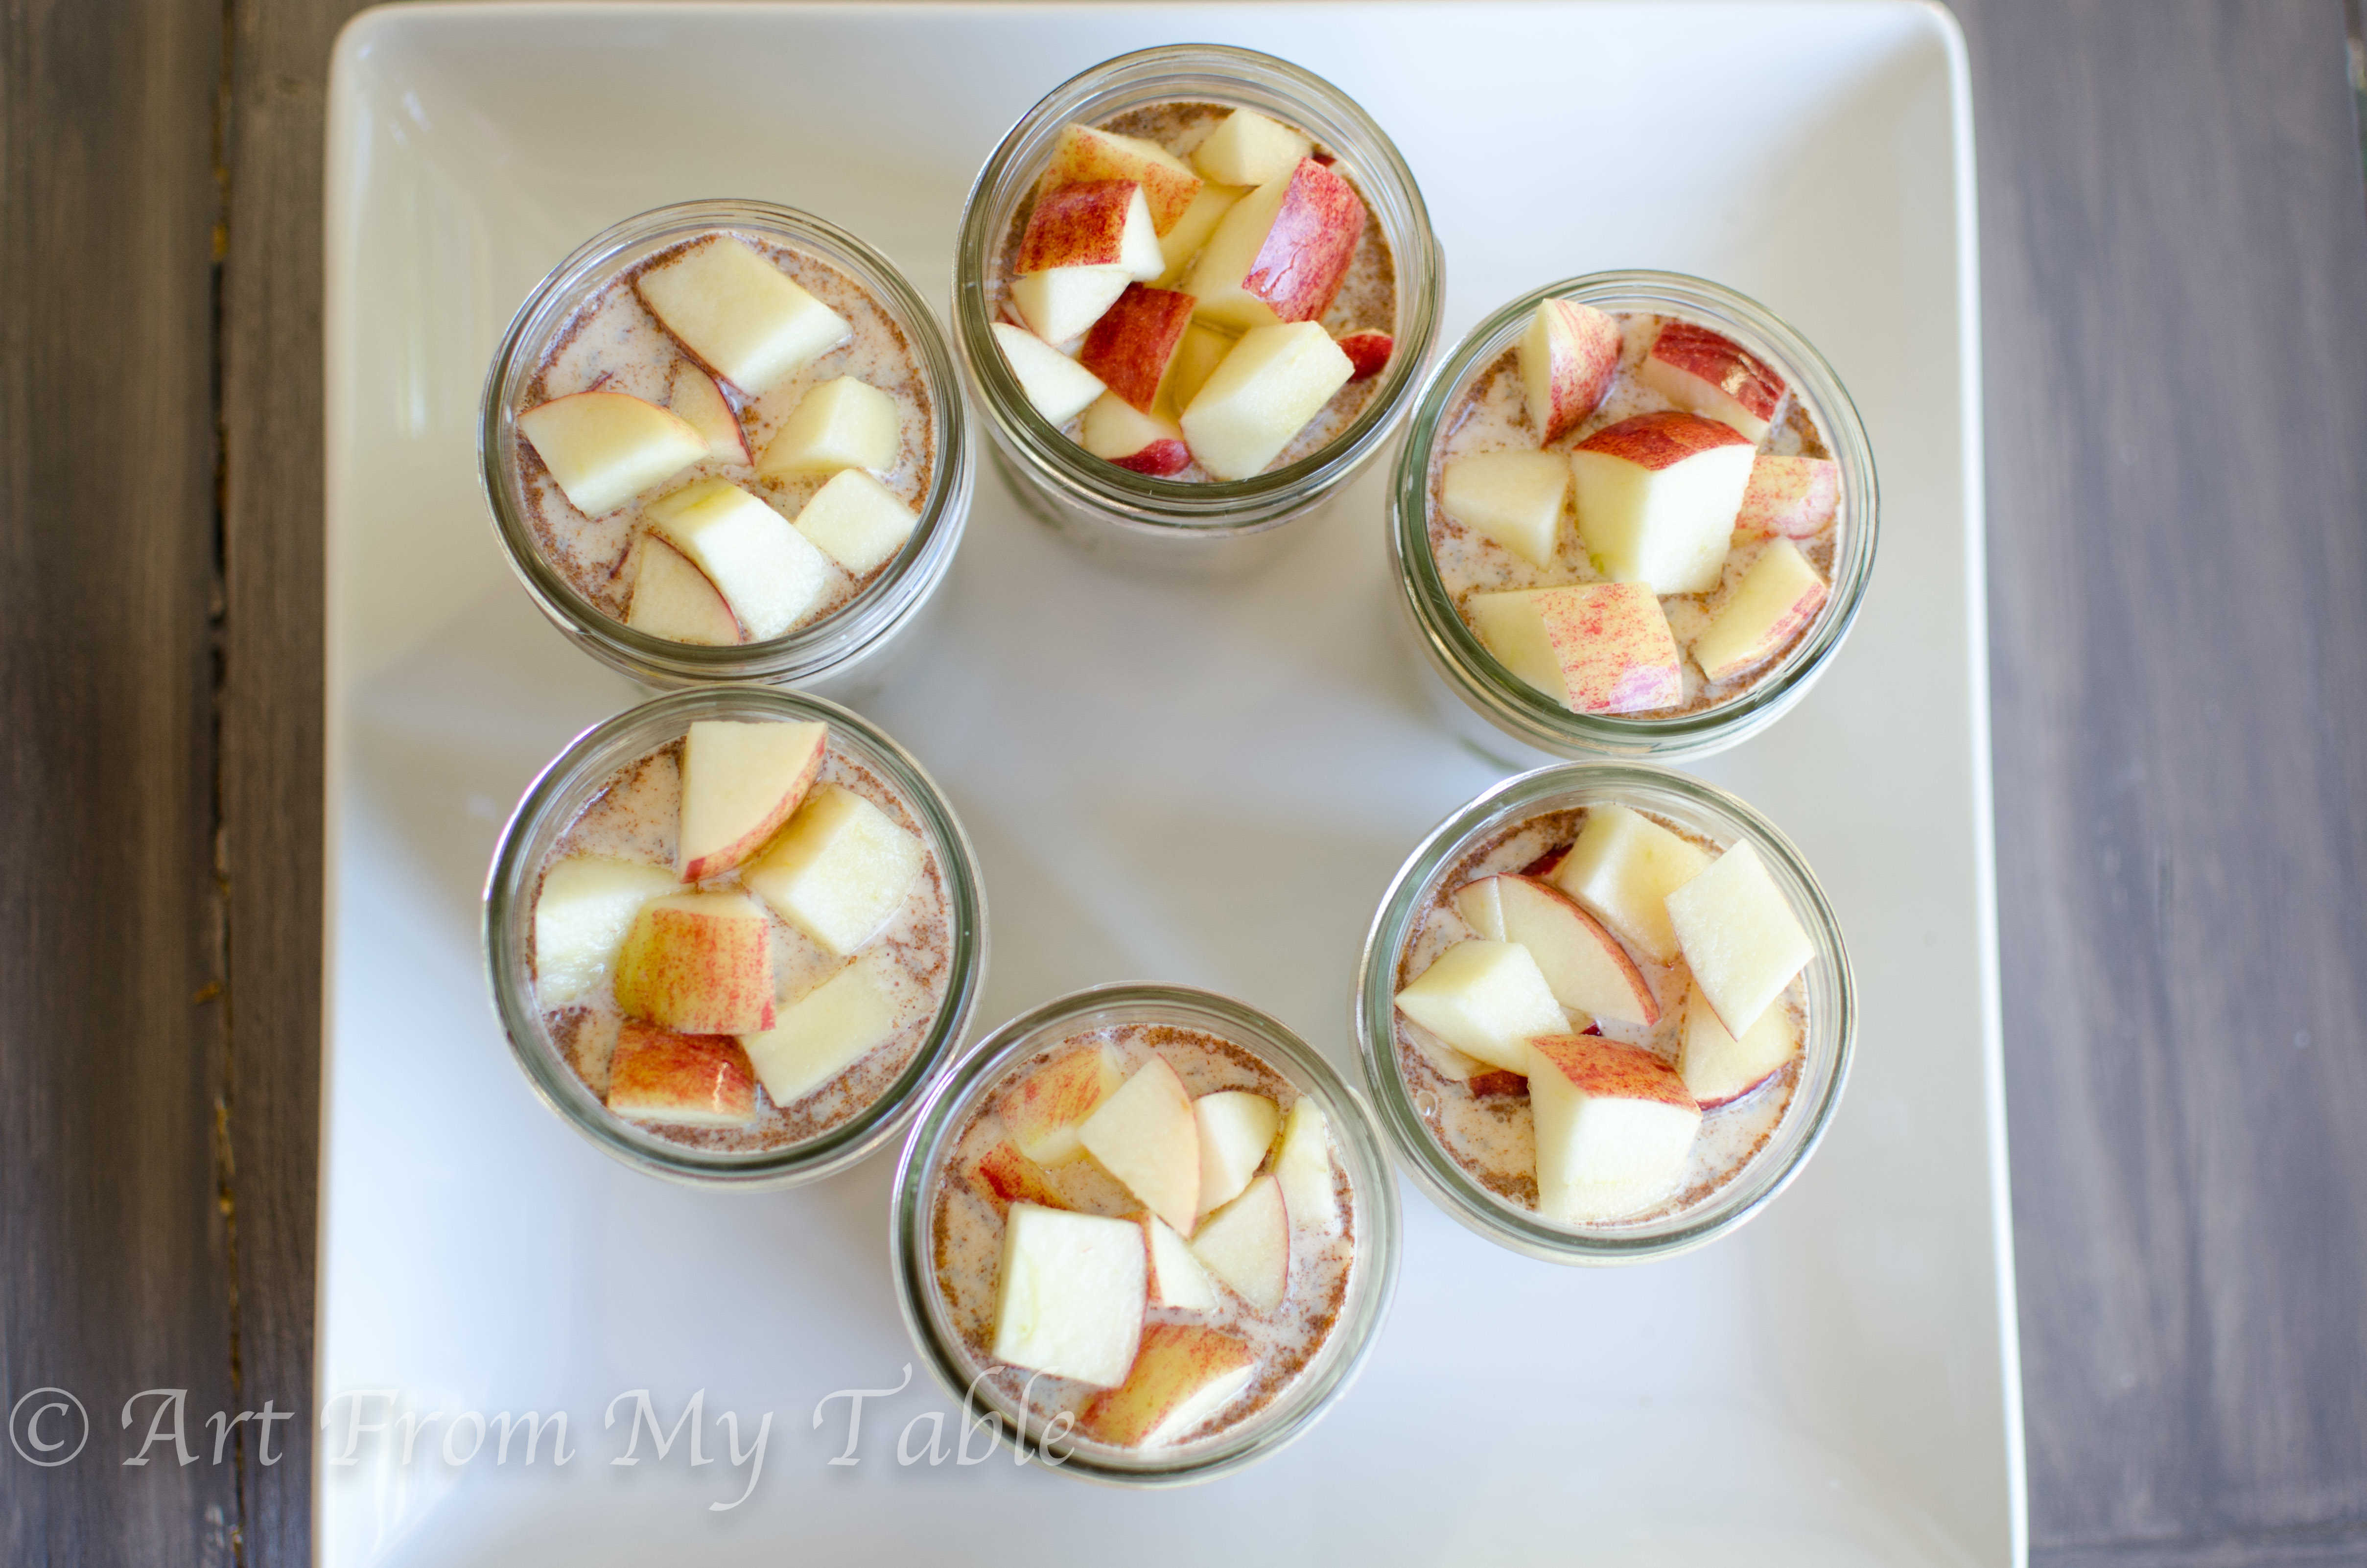 Overnight oats with apples and peanut butter in pint sized mason jars on a platter.